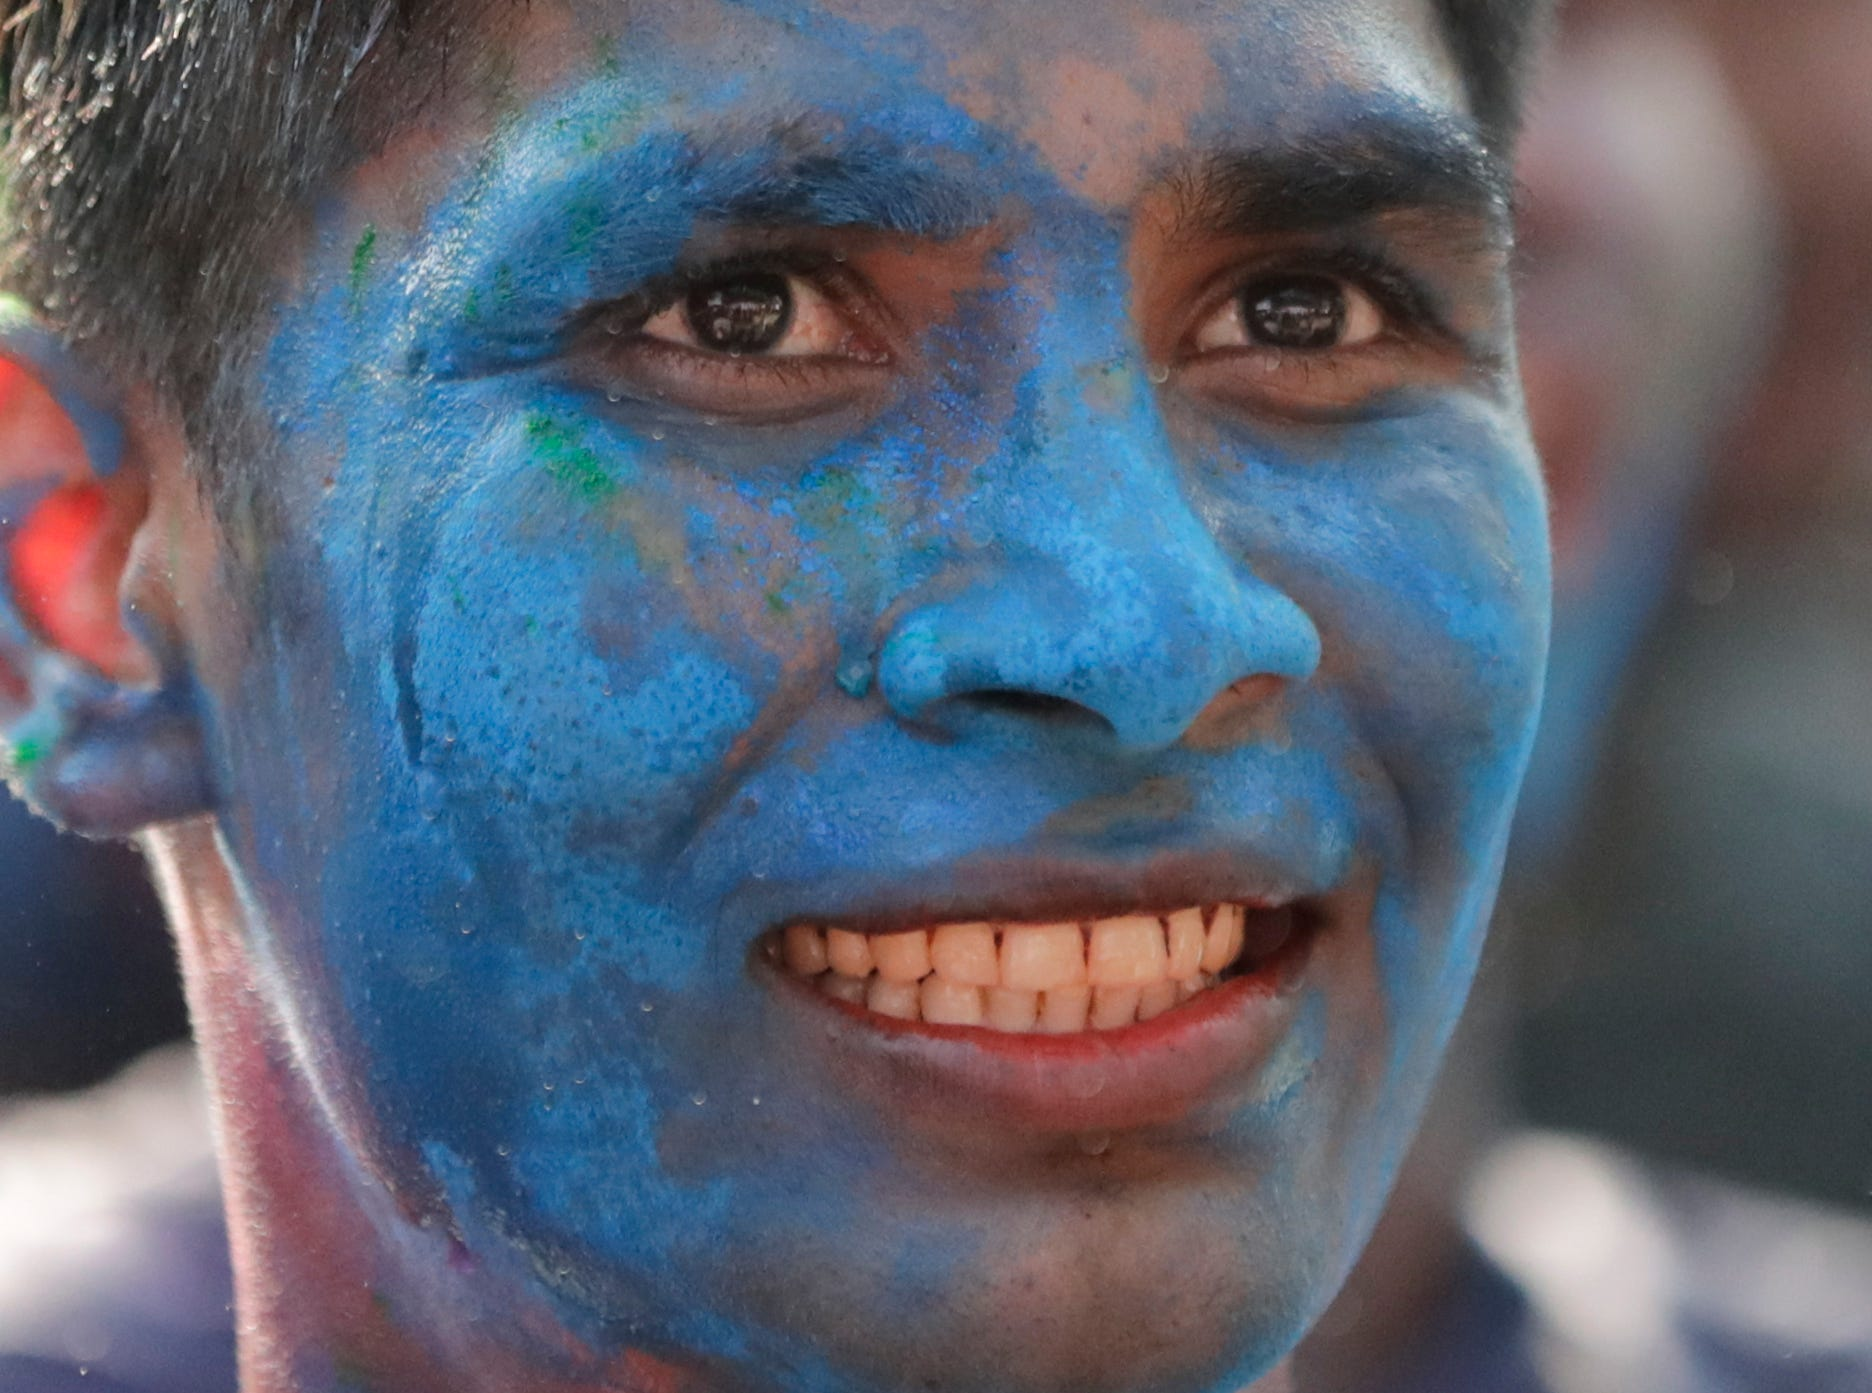 A Hindu boy with his face smeared with colored powder takes part of the Holi festival celebrations in Yangon, Myanmar on March 20, 2019.